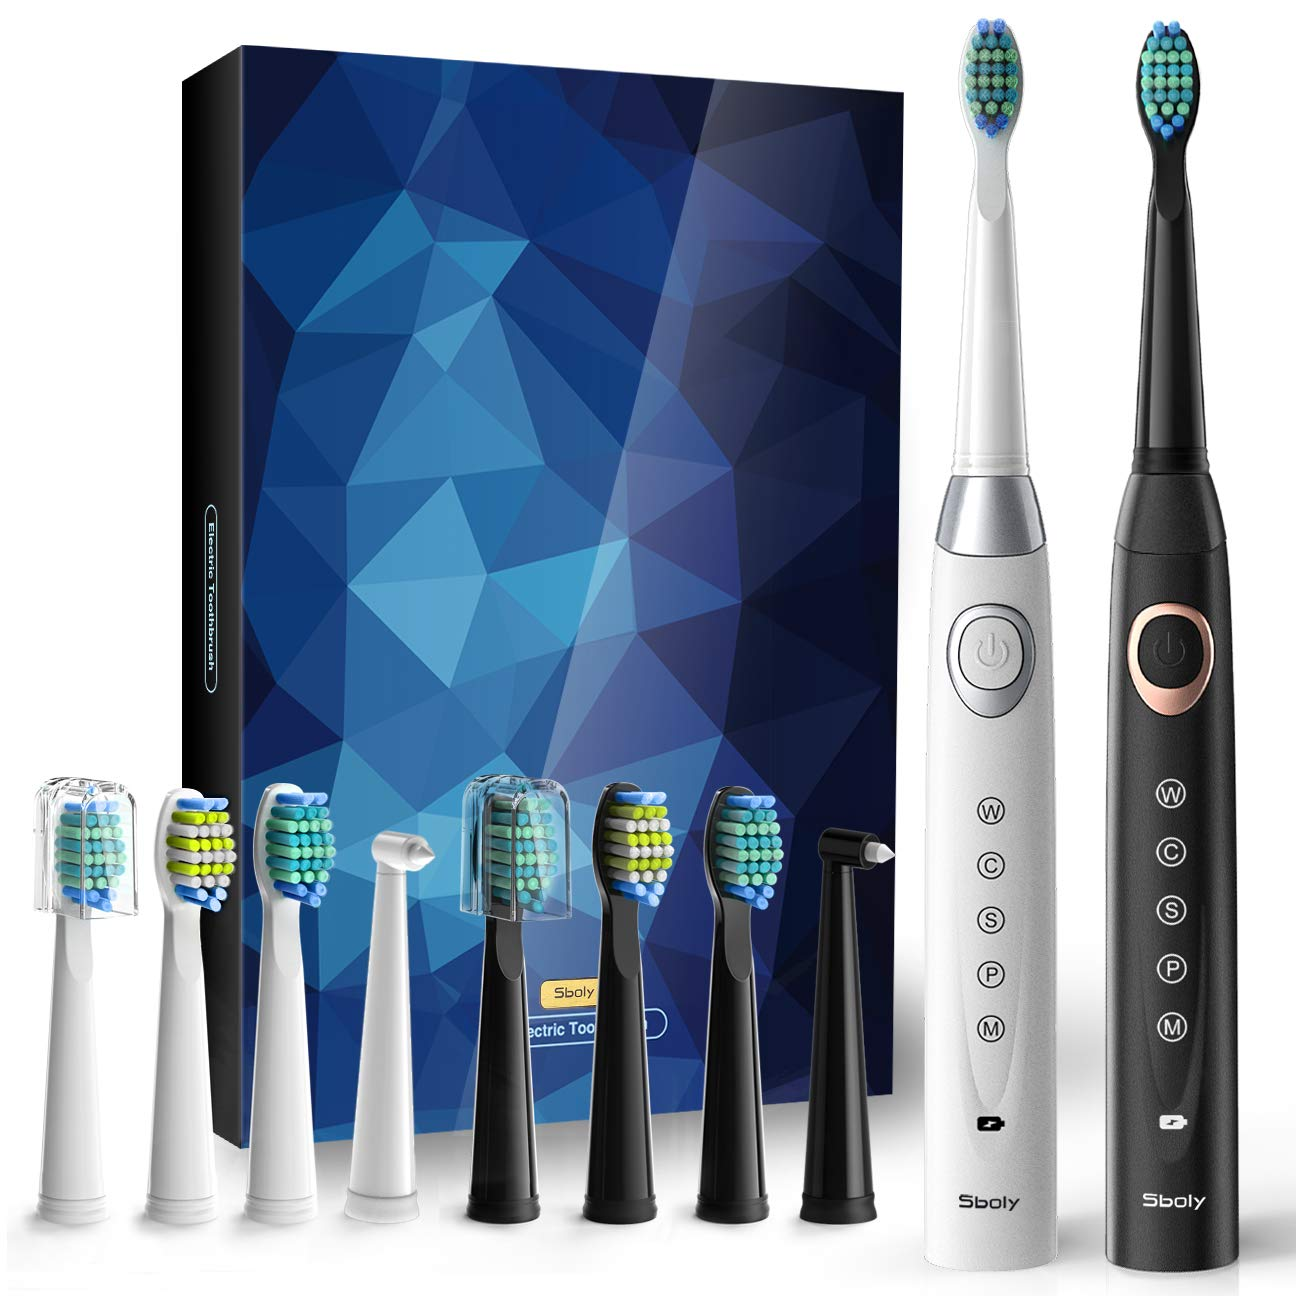 Sboly 2 Sonic Electric Toothbrushes in One Pack USB Rechargeable 5 Modes 8 Brush Heads